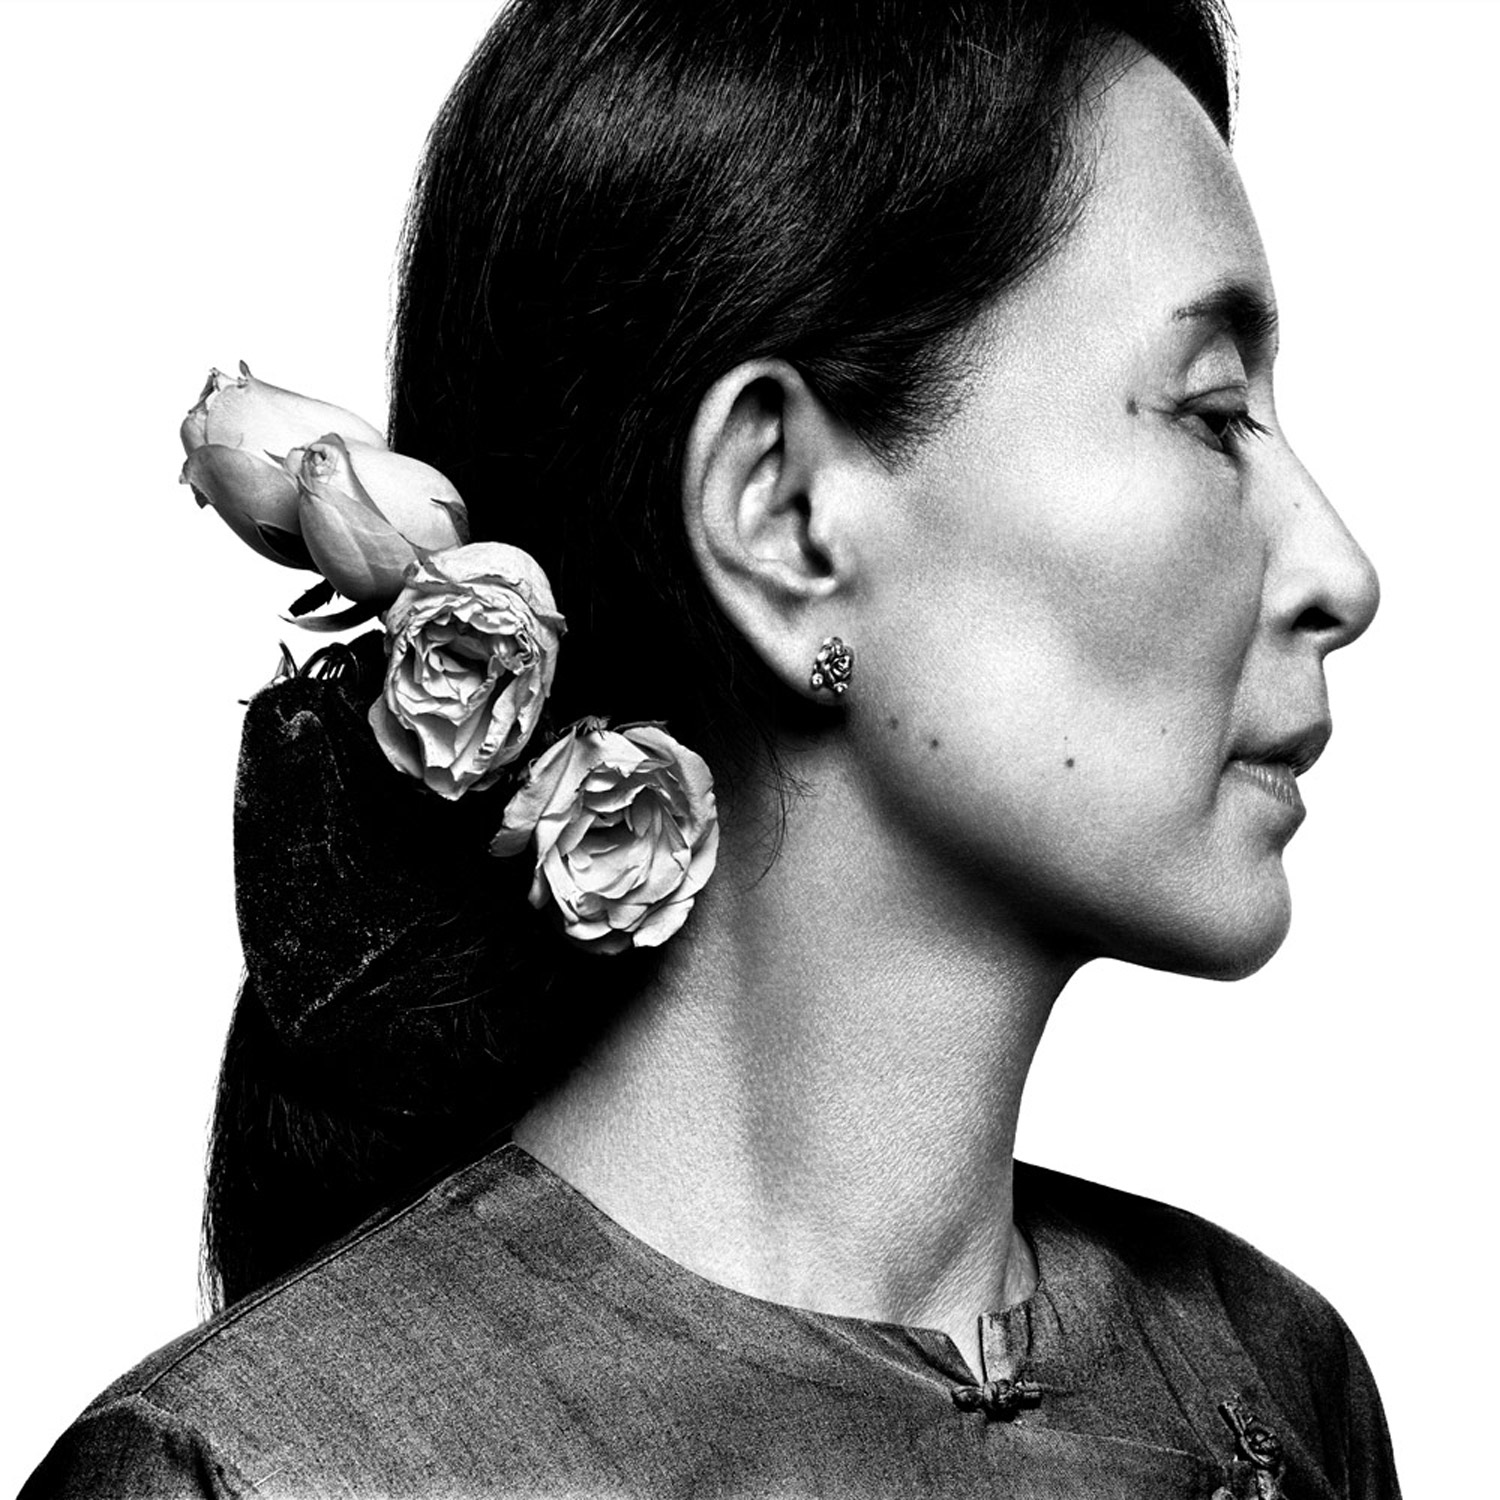 Aung San Suu Kyi, the General Secretary of Burma's National League for Democracy. From  The First Lady of Freedom,  Jan. 10, 2011, issue (cover story).